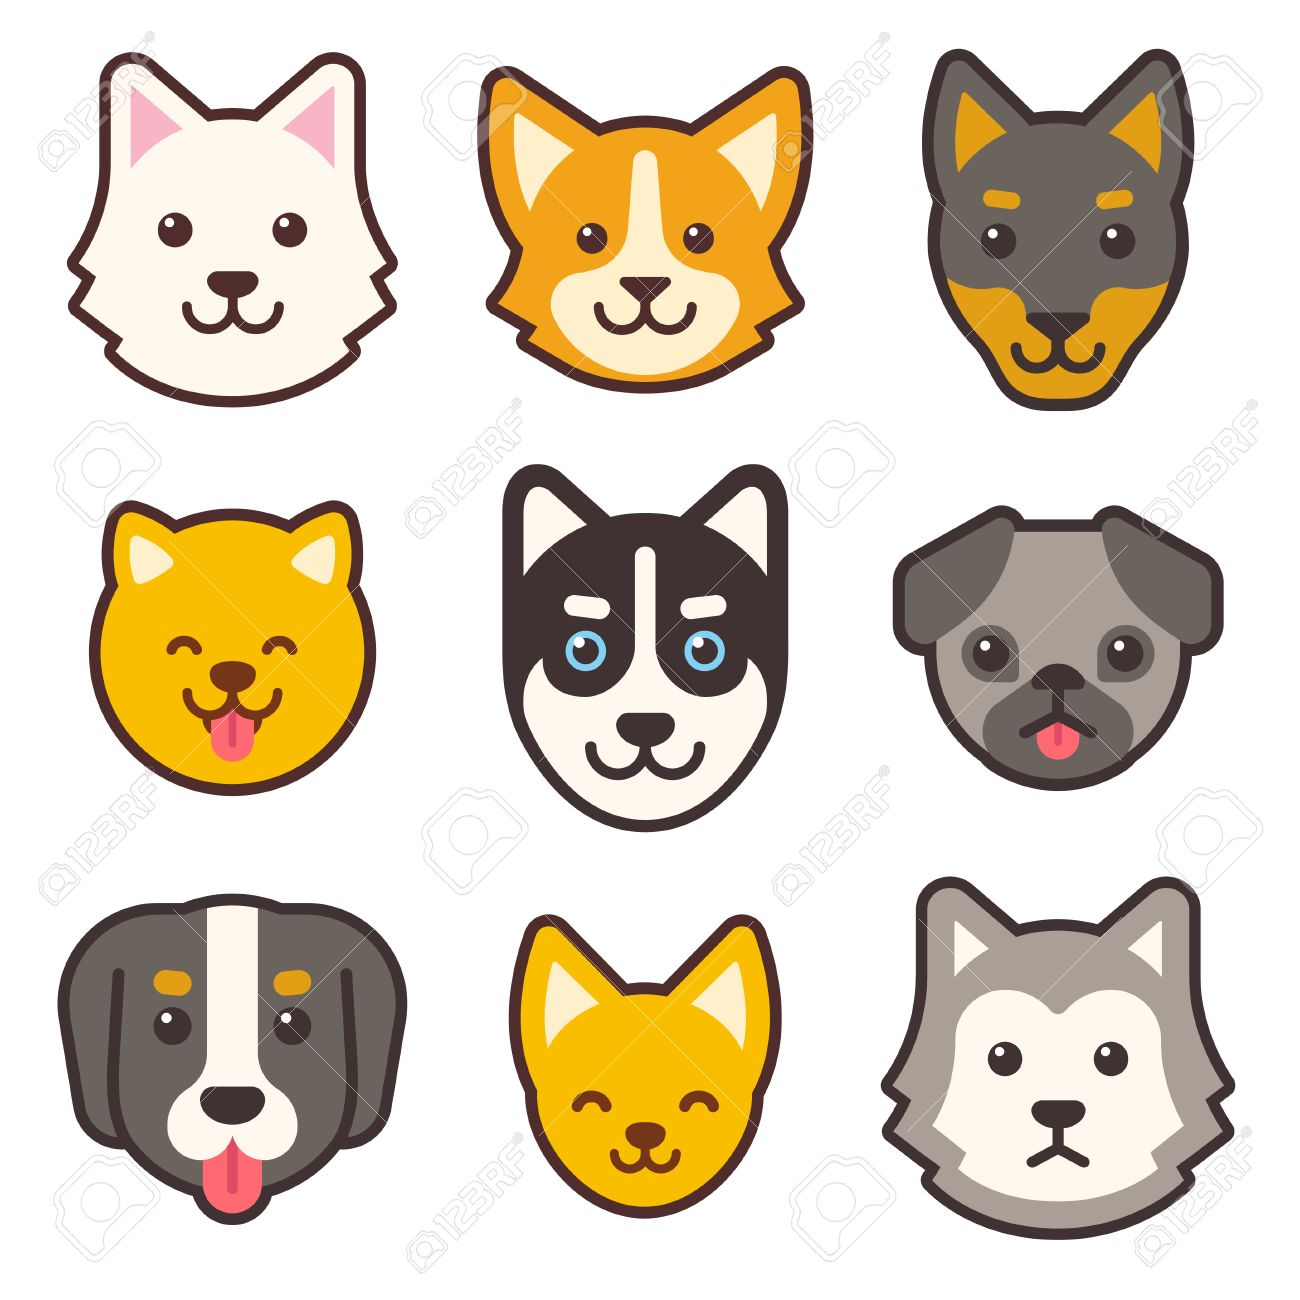 Image of: Png Cartoon Dog Faces Set Different Breeds Of Dogs Cute Flat Icons Stock Vector 123rfcom Cartoon Dog Faces Set Different Breeds Of Dogs Cute Flat Icons